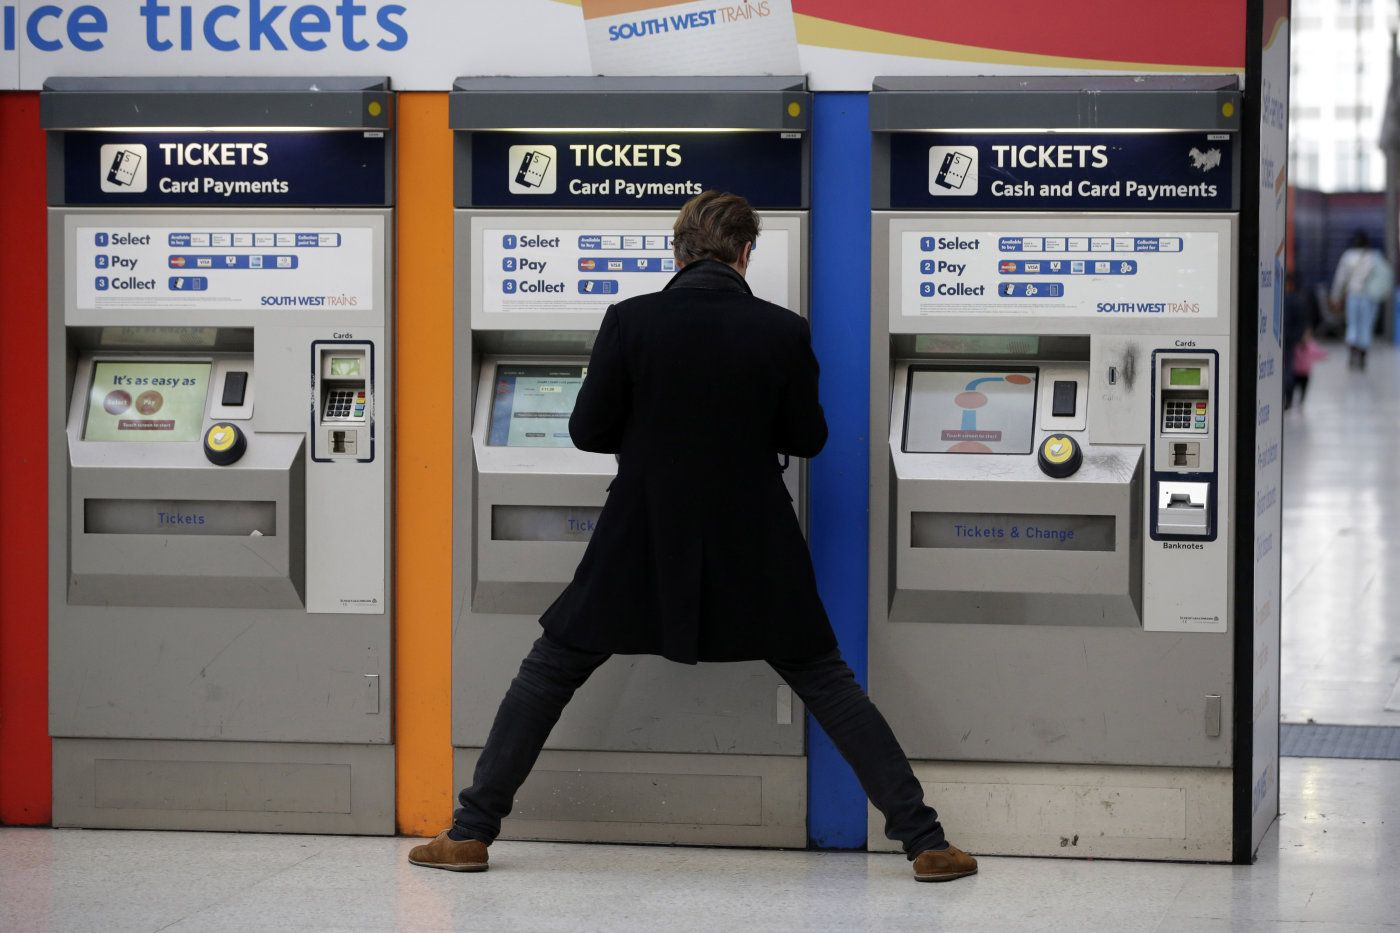 UK trains to let contactless cards act as paper tickets In